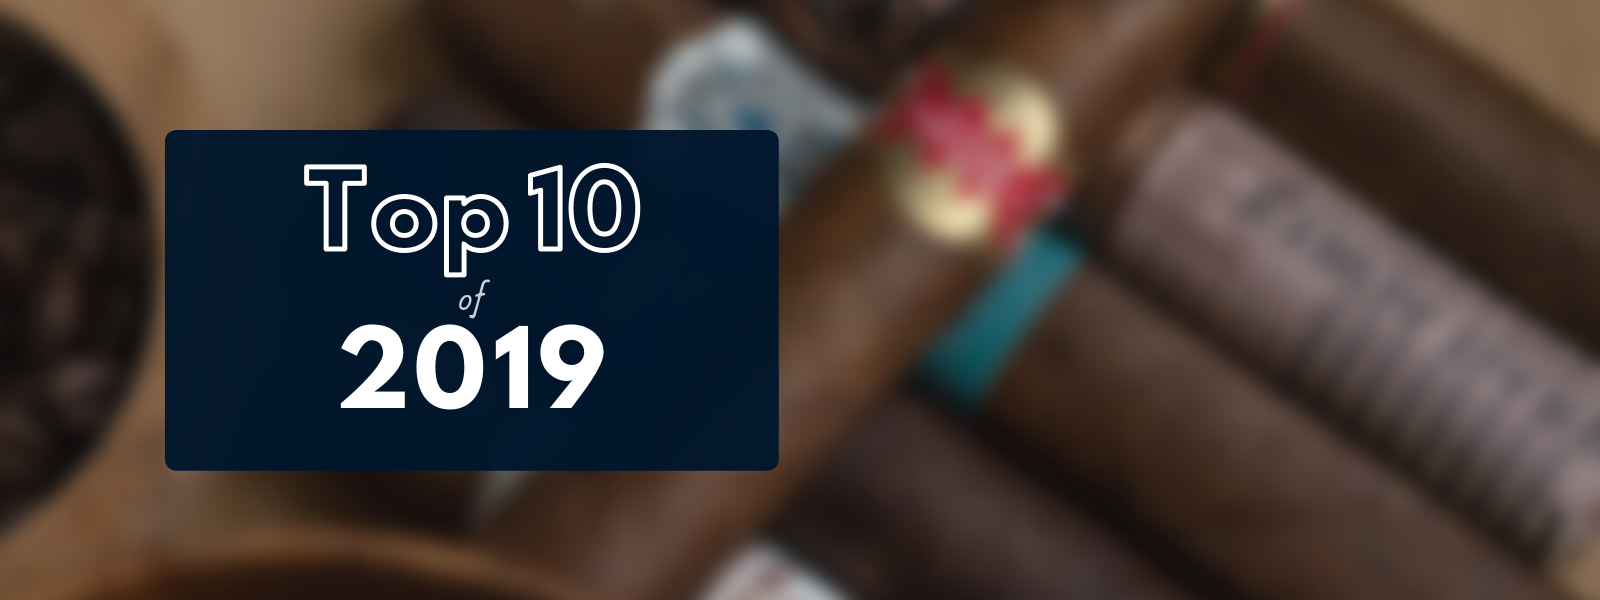 Top 10 Cigars of 2019